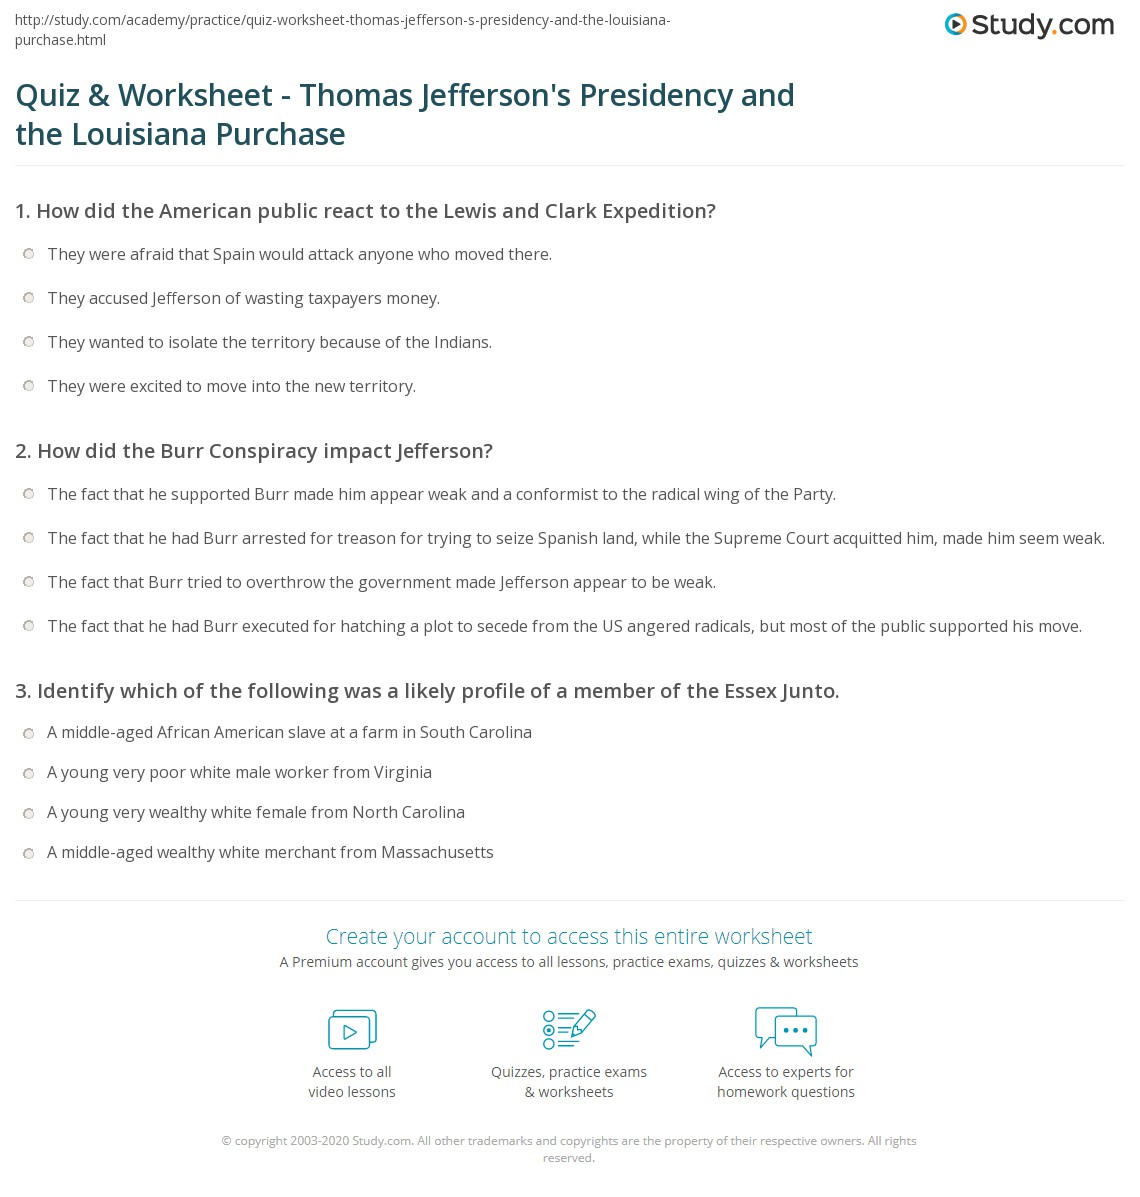 Worksheets Louisiana Purchase Activity : Quiz worksheet thomas jefferson s presidency and the